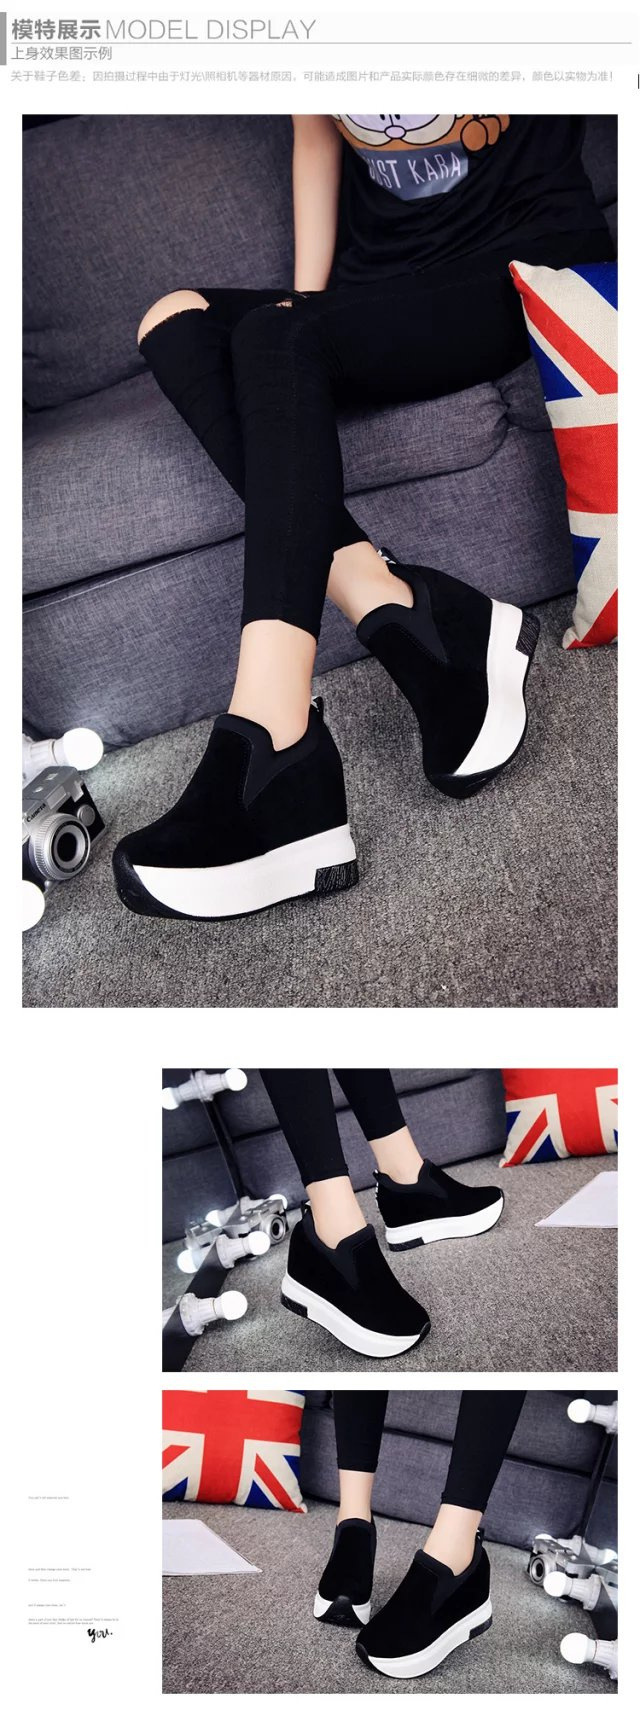 XEK 2018 Women Increased Shoes Women Fashion Platform Loafers Printed Casual Shoes Woman Wedges Shoes Breathable ZLL300 8